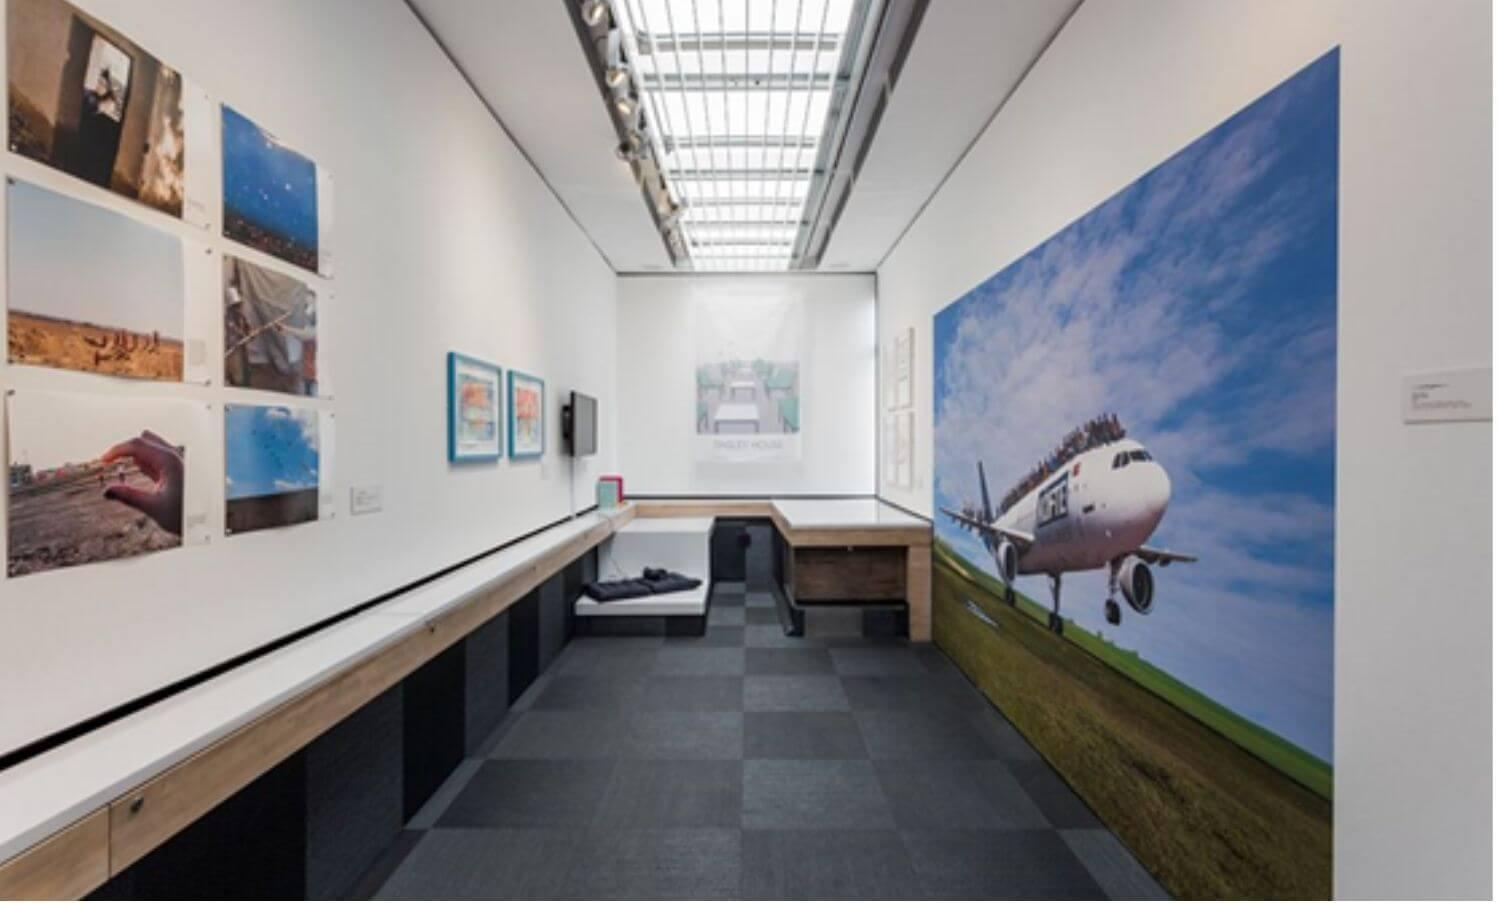 Travelling Gallery installation view - Spring 2019 Exhibition 'Displaced'